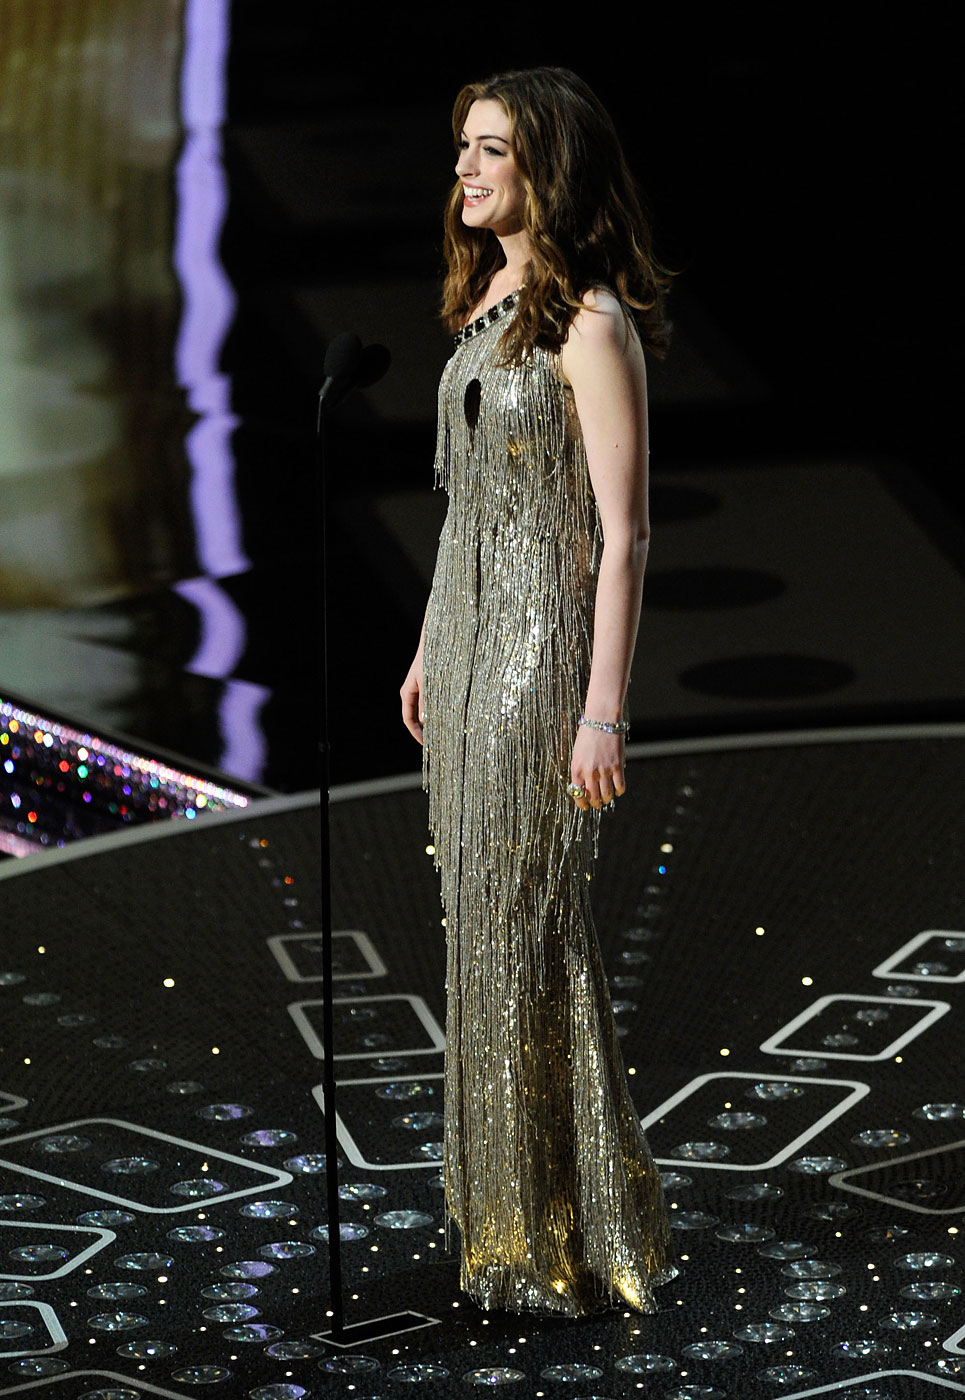 Anne Hathaway wears Oscar de la Renta  onstage during the 83rd Annual Academy Awards at the Kodak Theatre on February 27, 2011 in Hollywood, California.